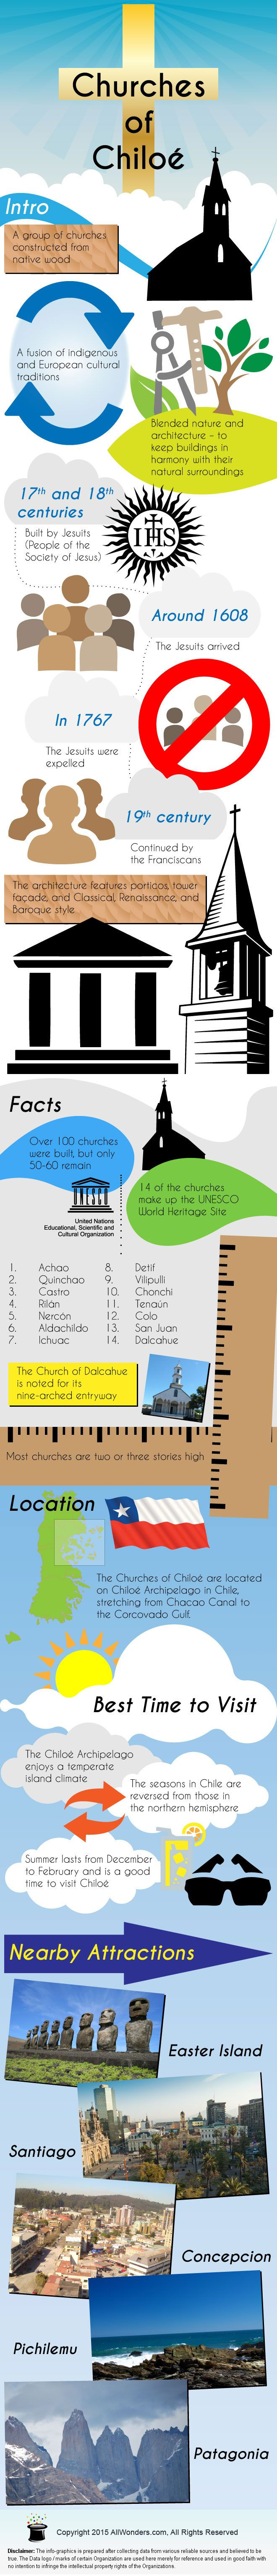 Churches of Chiloé - Infographic